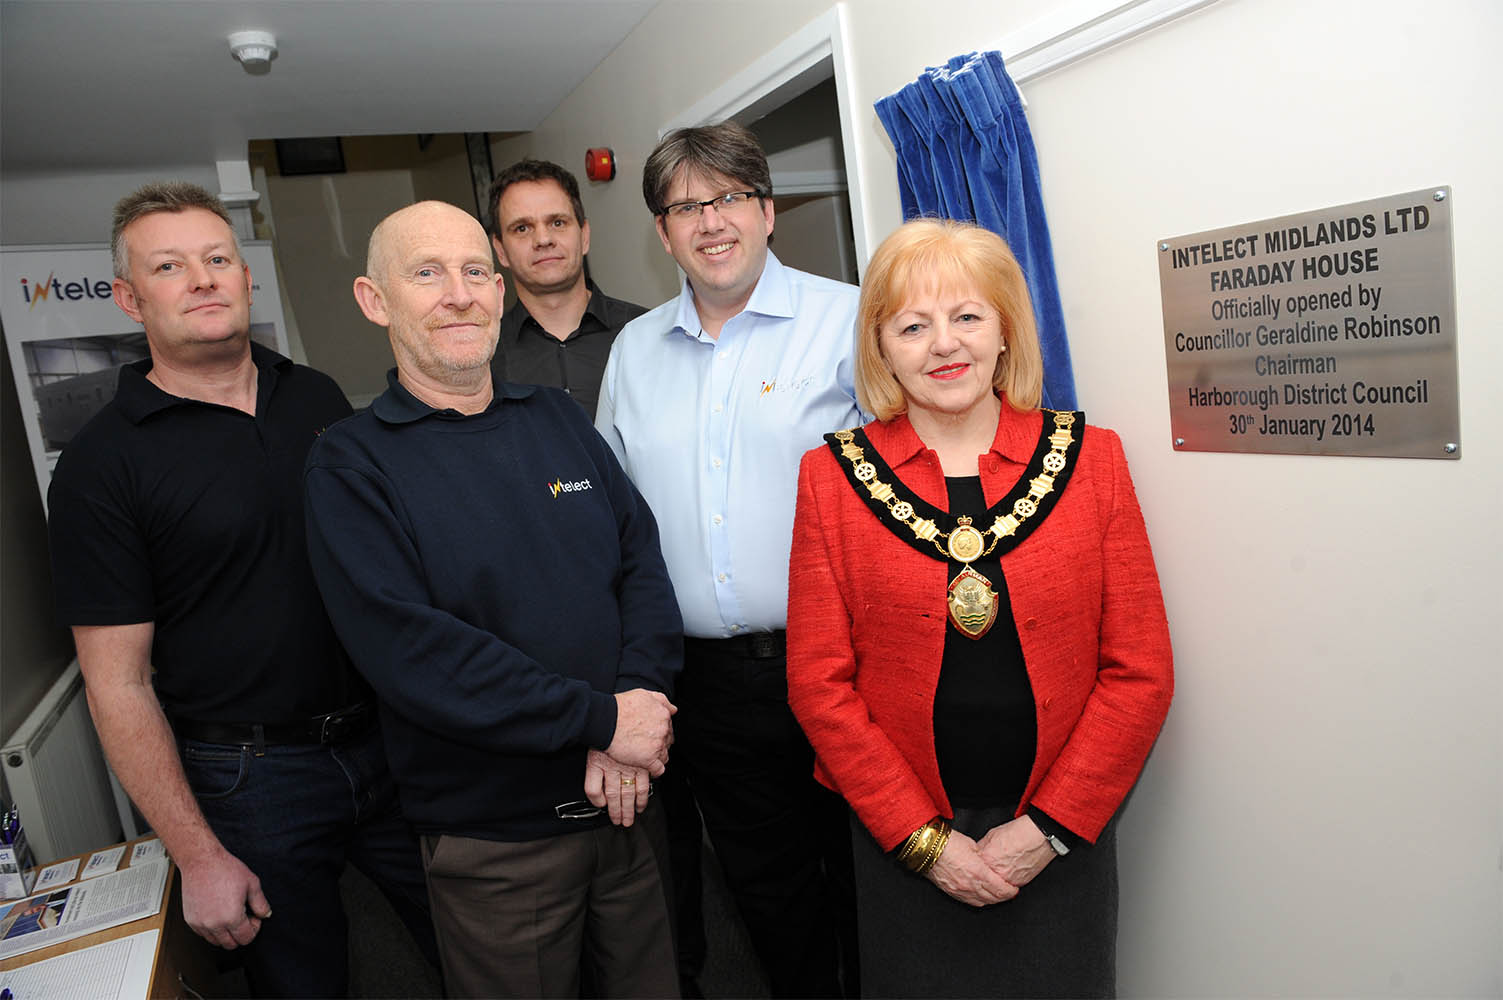 Councillor Geraldine Robinson opens Intelect Midlands Farraday House